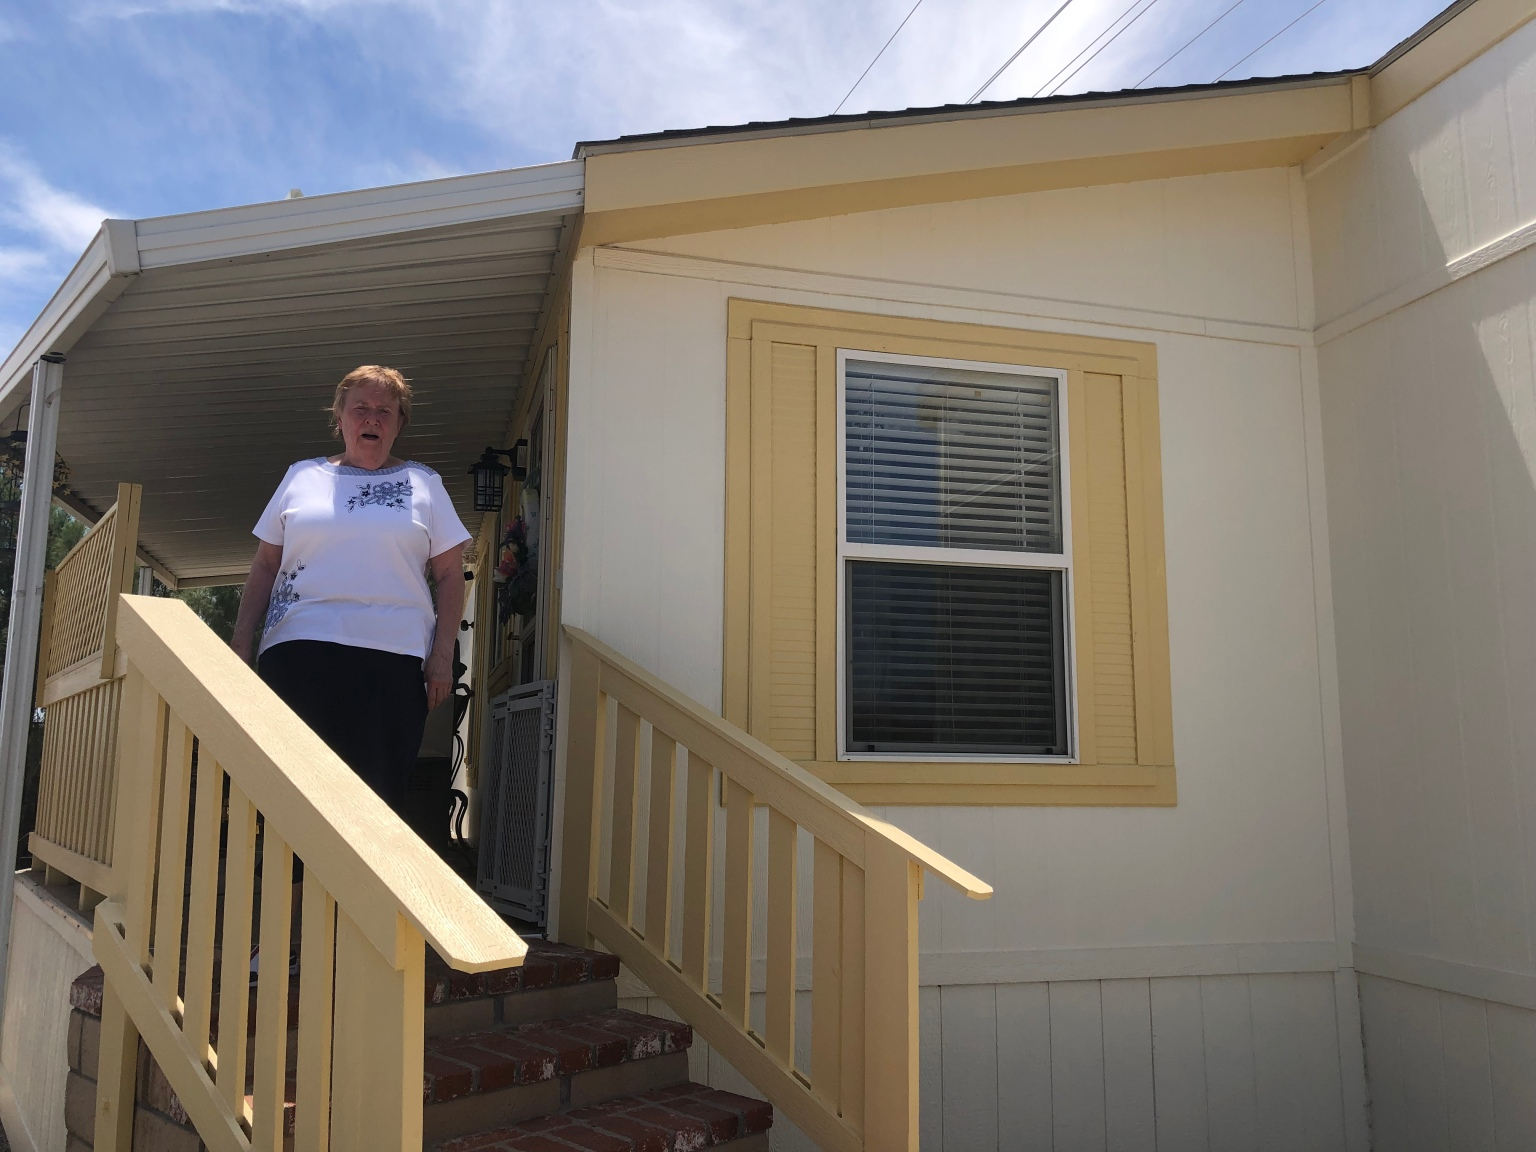 DHS Mobile Home community appeals new housing proposal, pursuing legal options